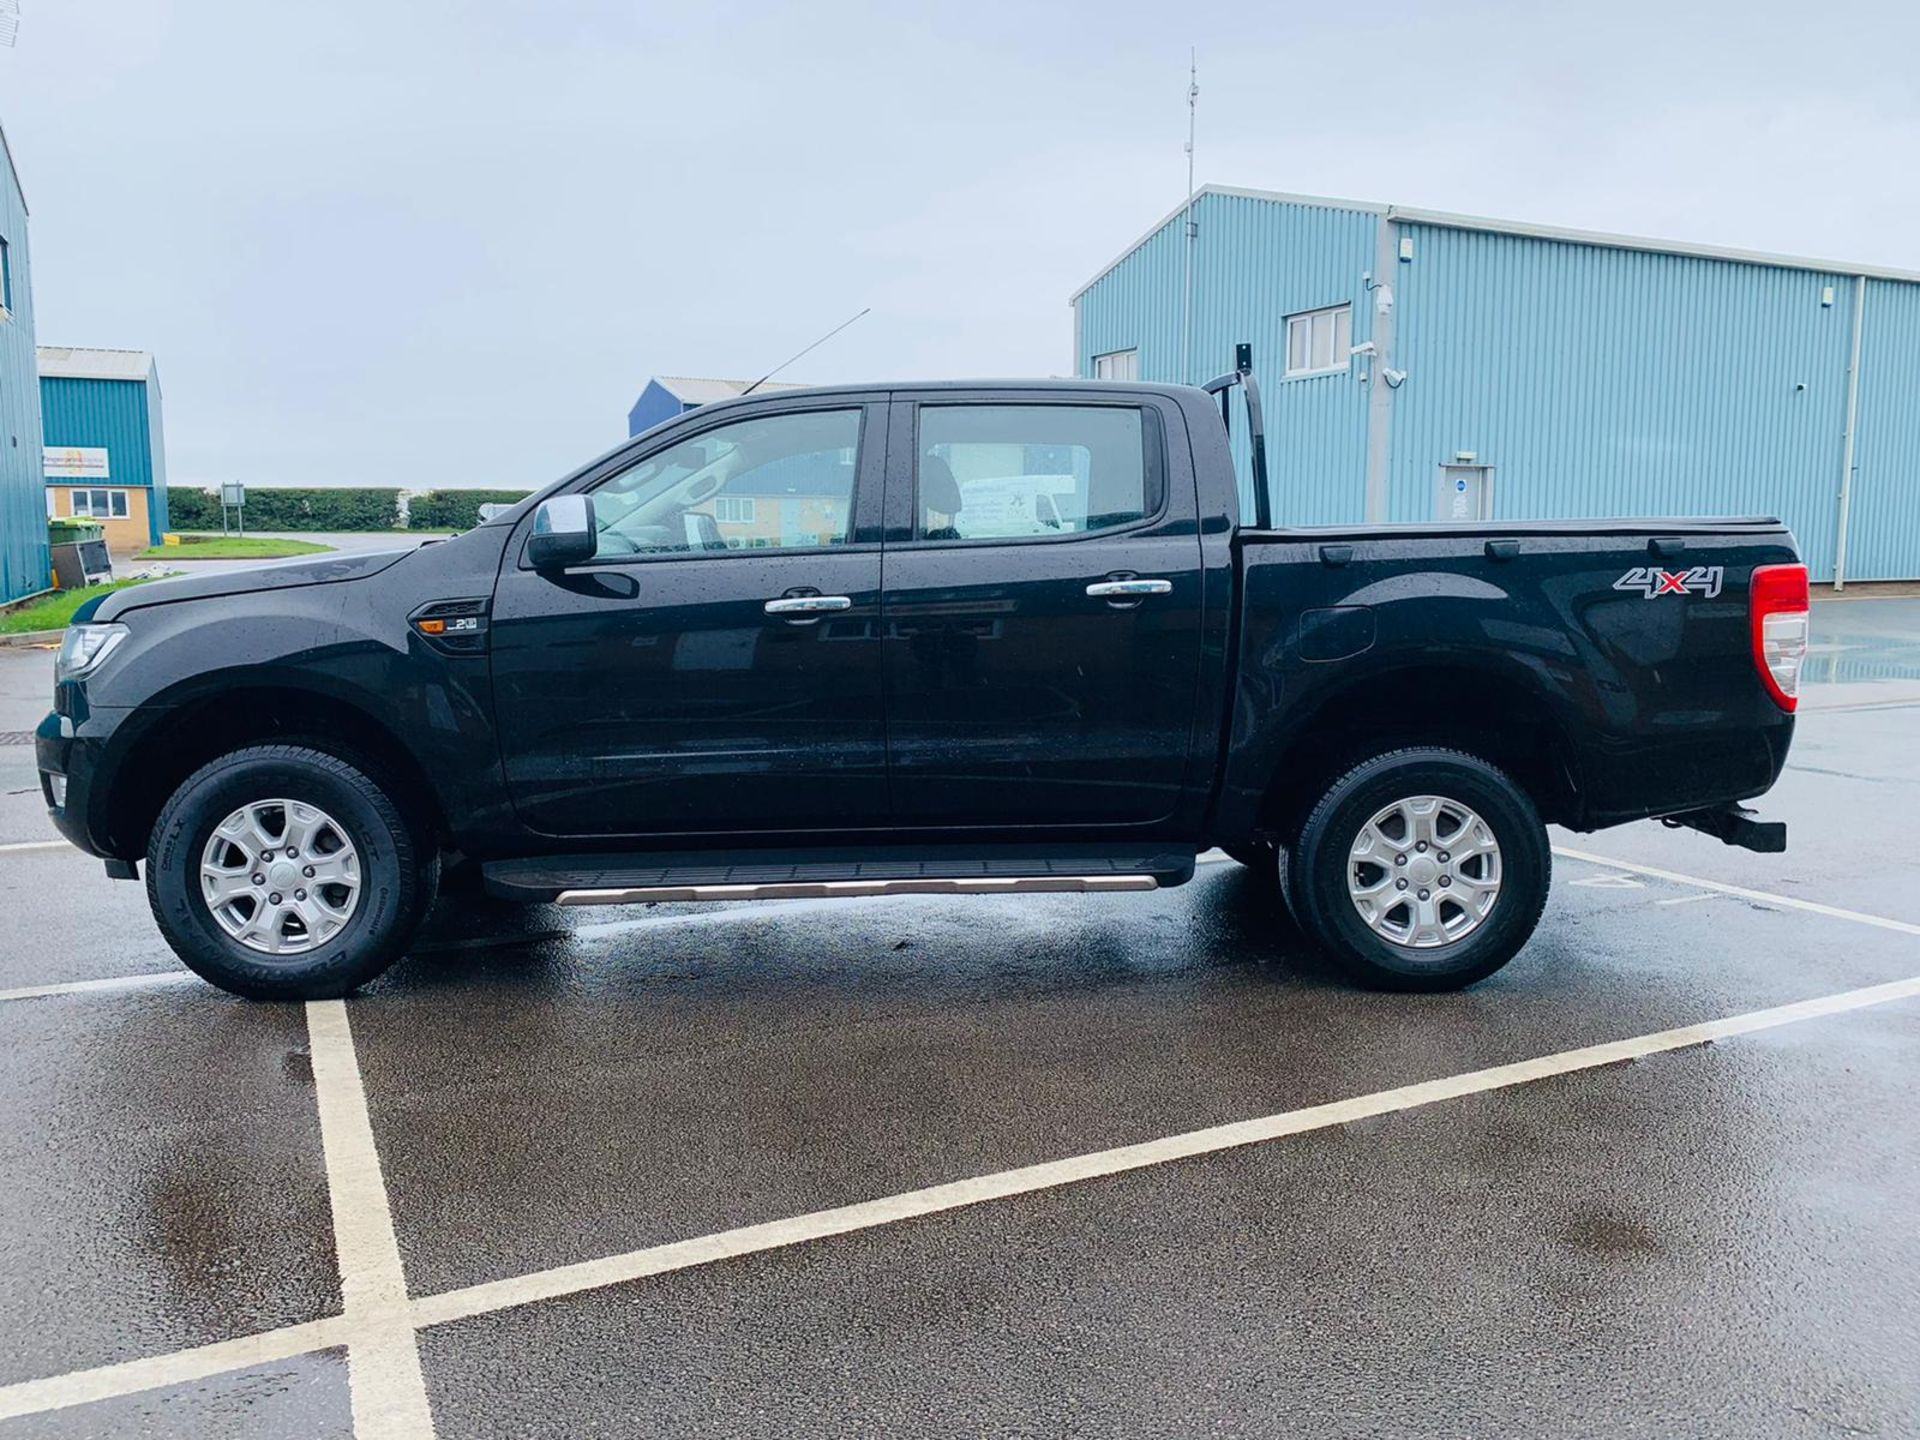 Ford Ranger 2.2 TDCI XLT 4x4 Double Cab - 2017 Model - Euro 6 - ULEZ Compliant - Service History - Image 4 of 24